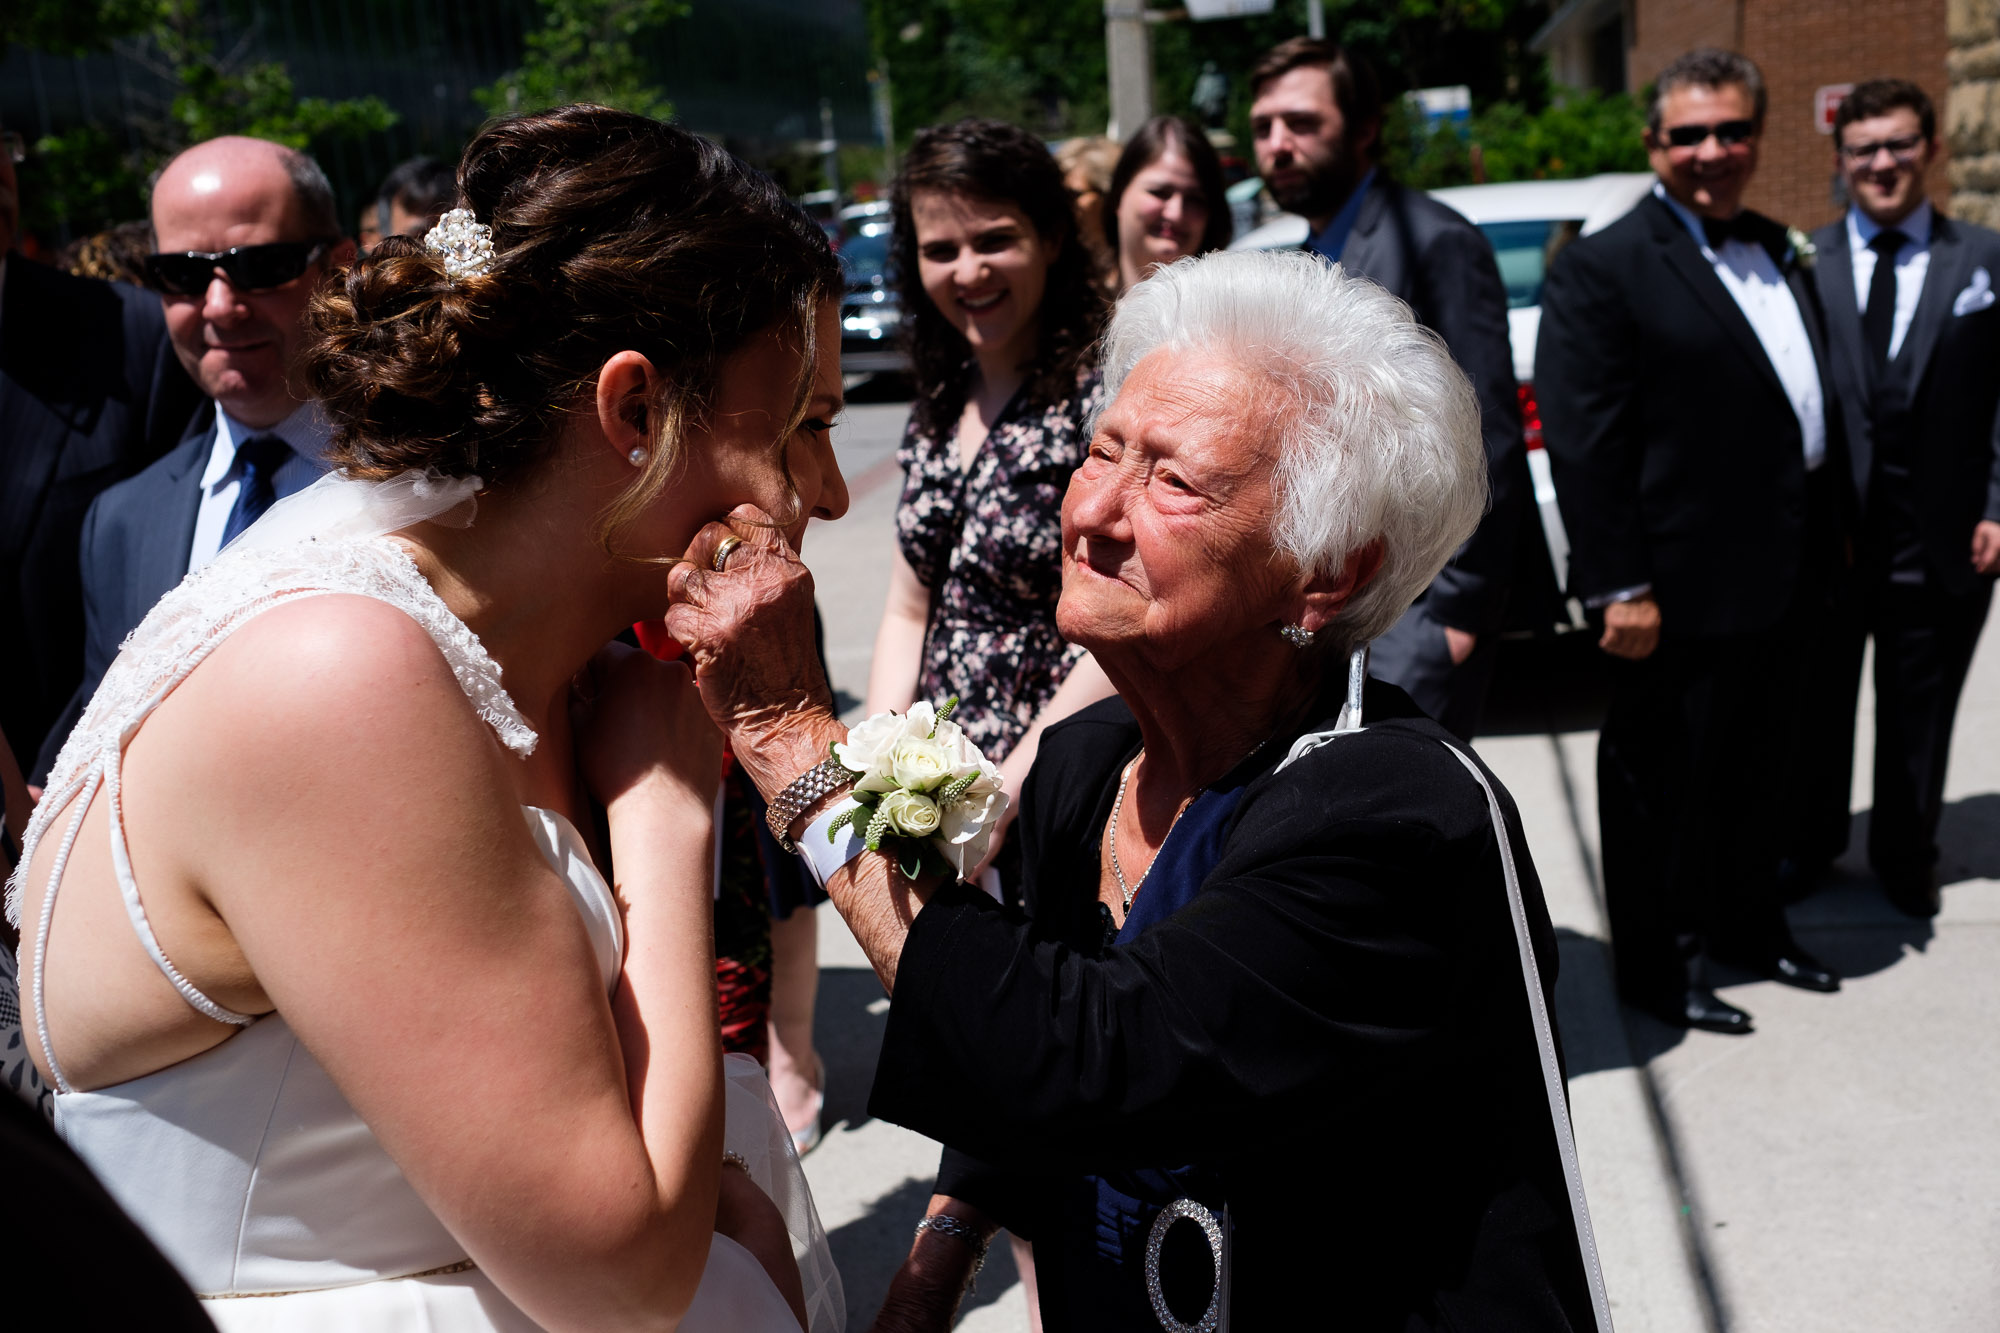 Katherine get's her cheeks pinched by her grandmother after the wedding ceremony at St. George's Greek Orthodox Church in Toronto.